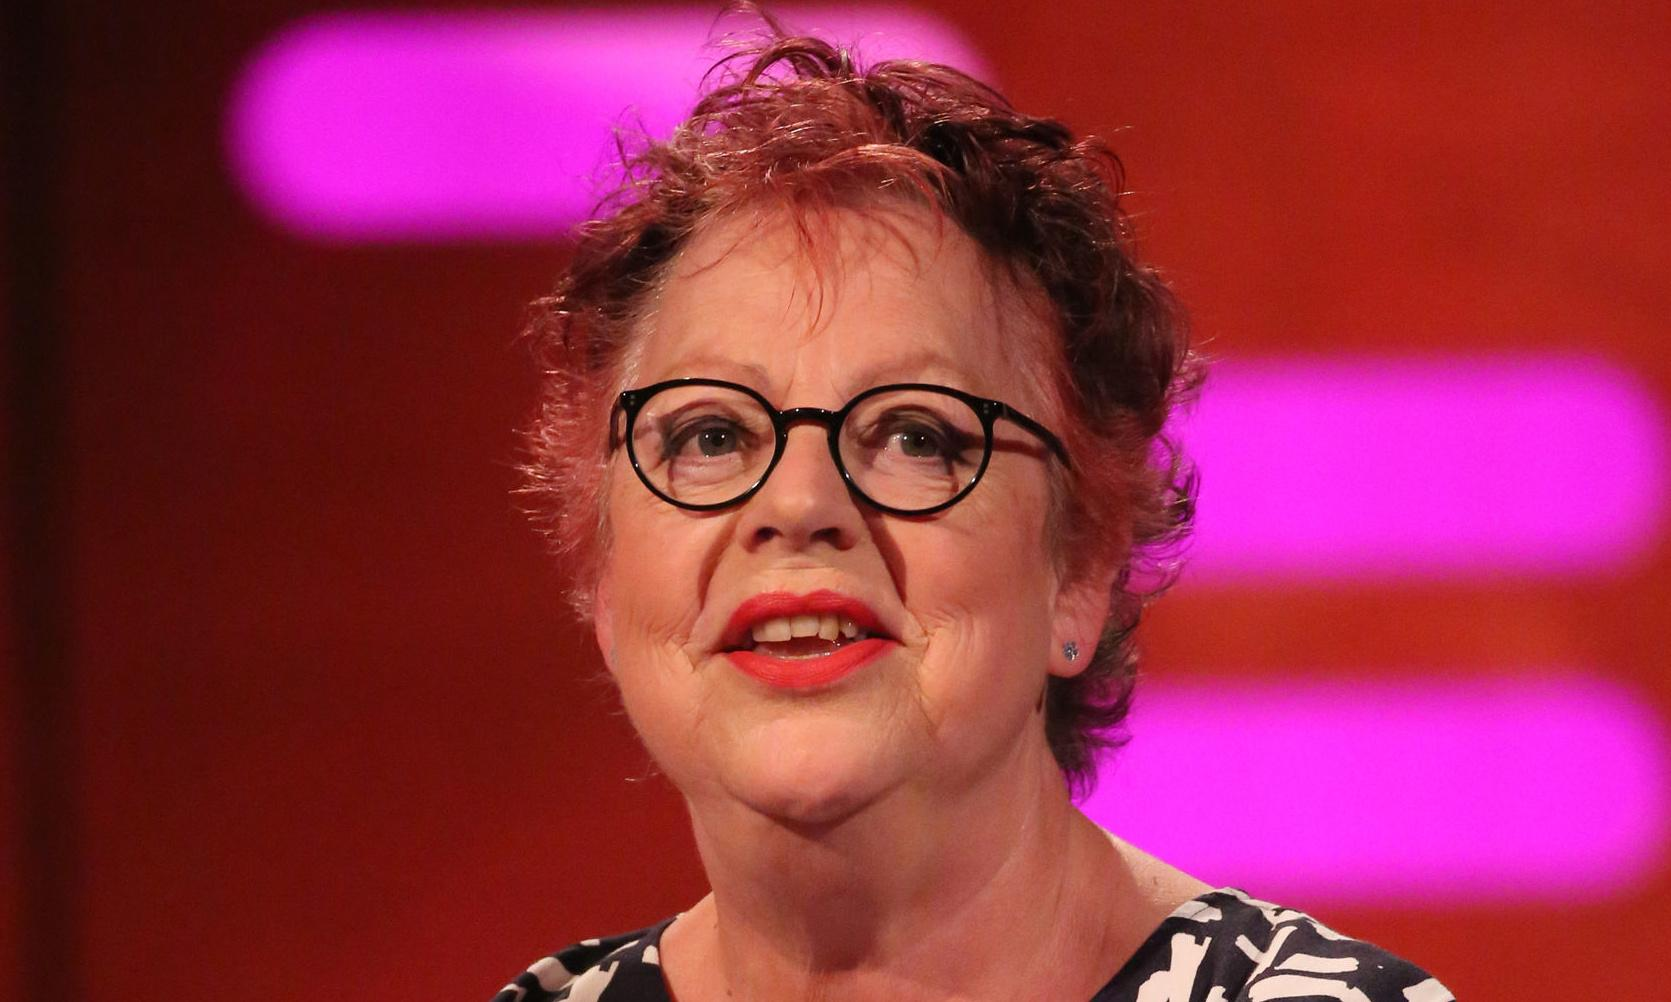 Jo Brand's battery acid joke inappropriate for Radio 4, says BBC